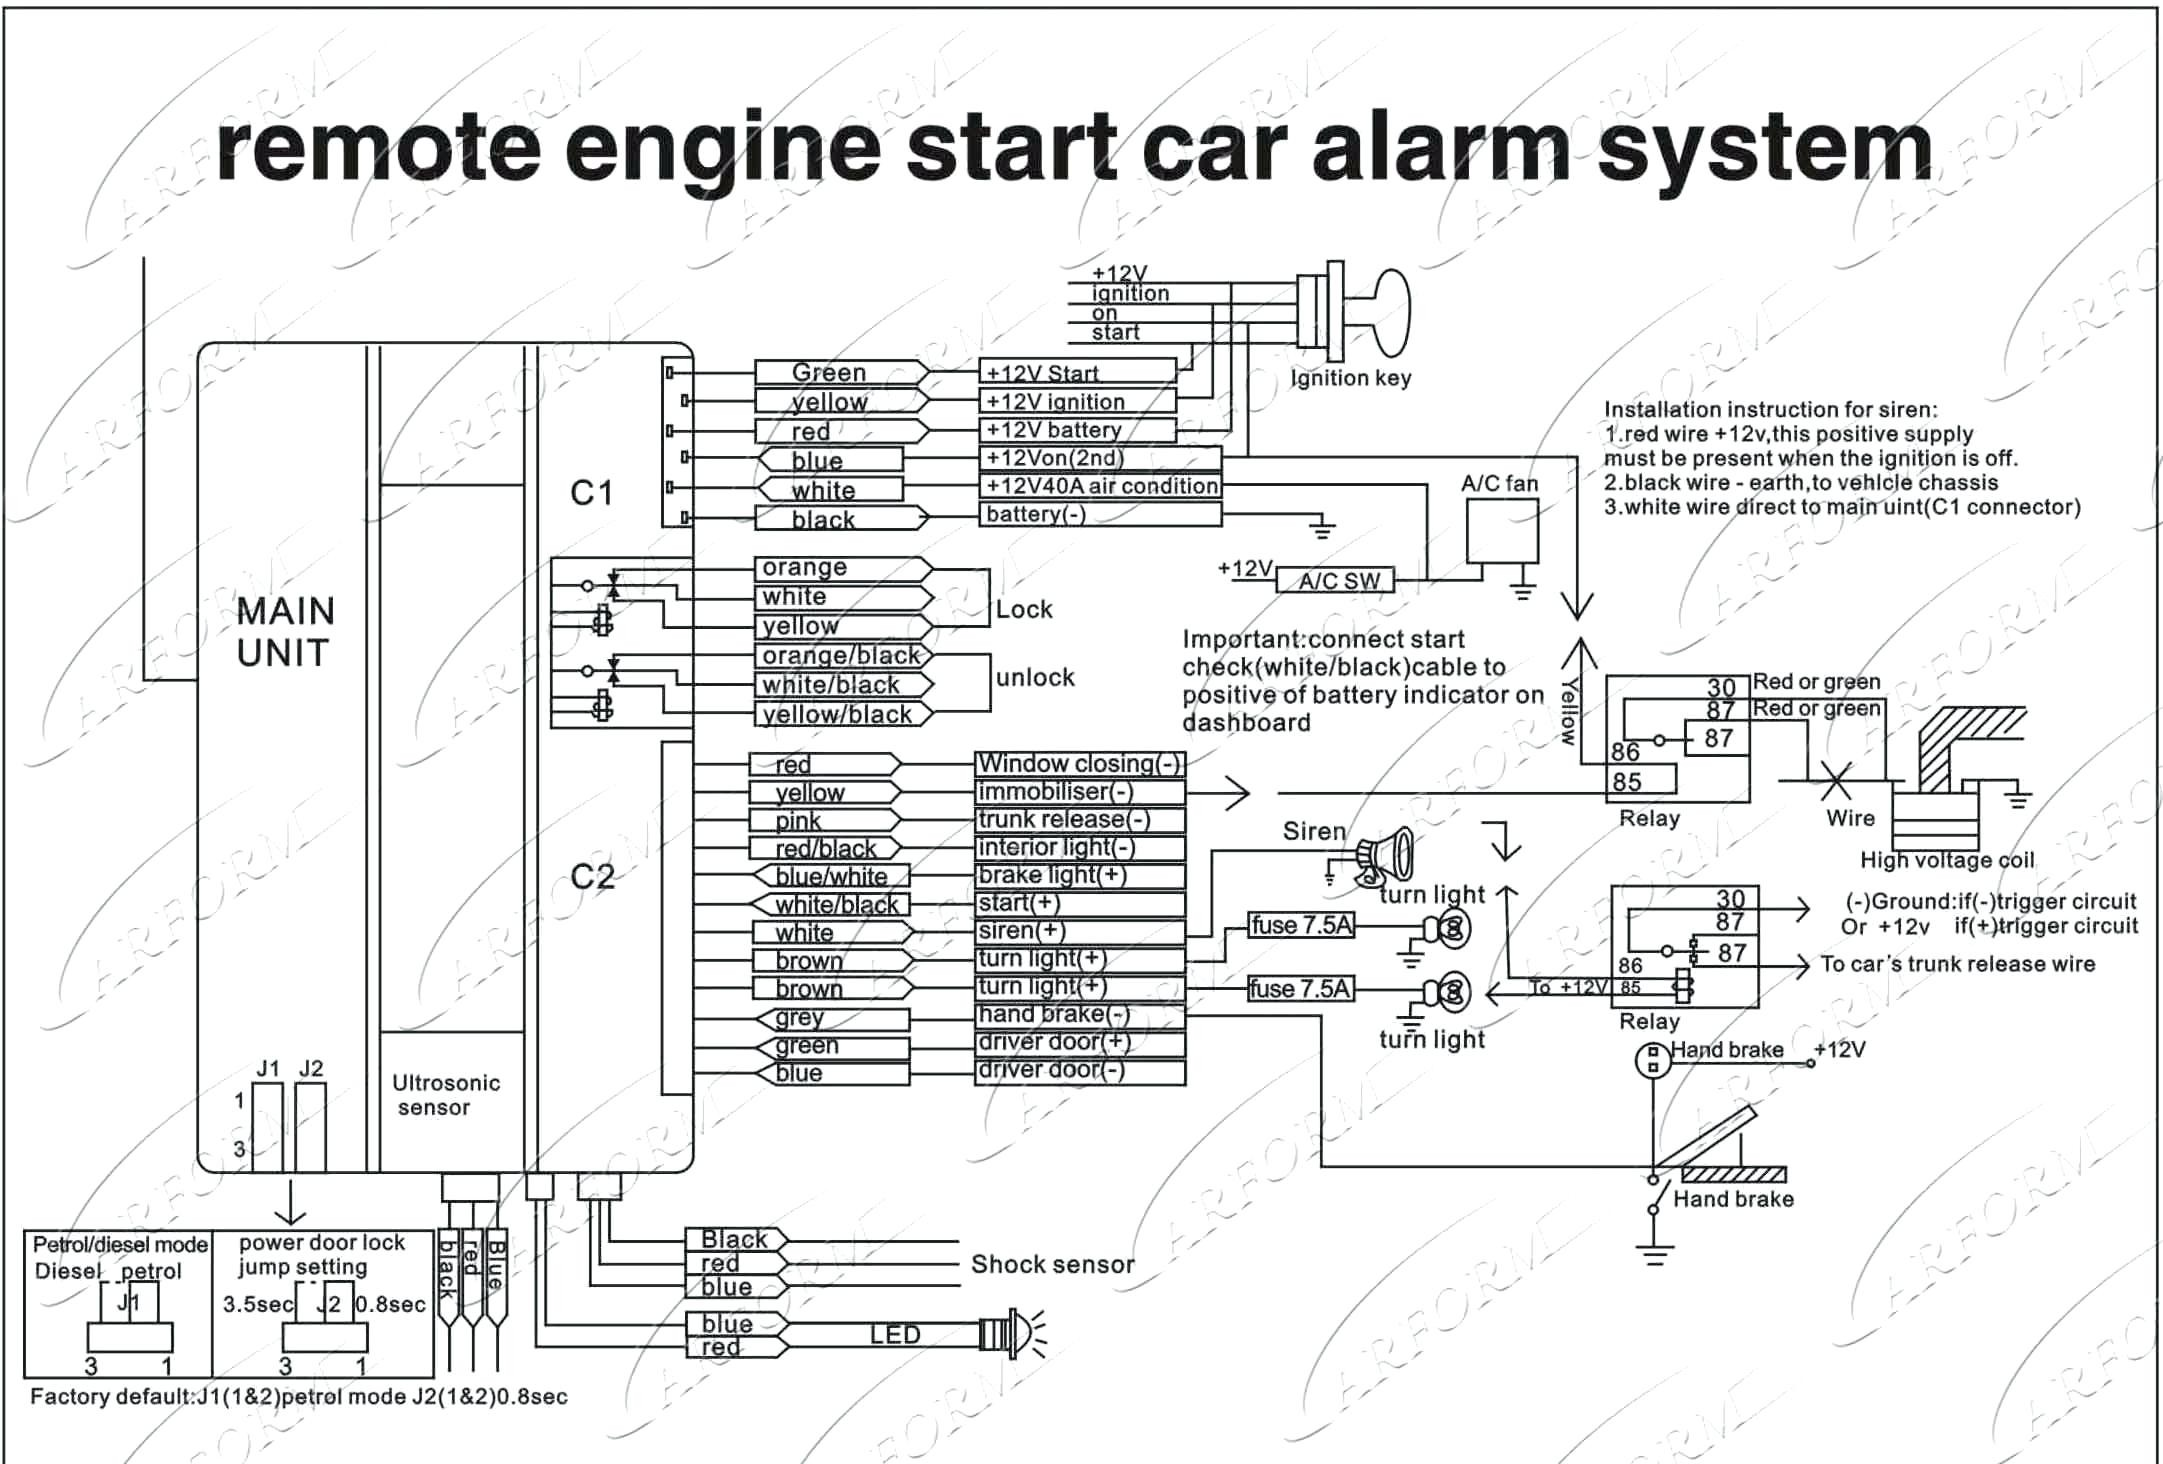 Car Alarm System Wiring Diagram Car Security System Wiring Diagram – Volovetsfo Of Car Alarm System Wiring Diagram